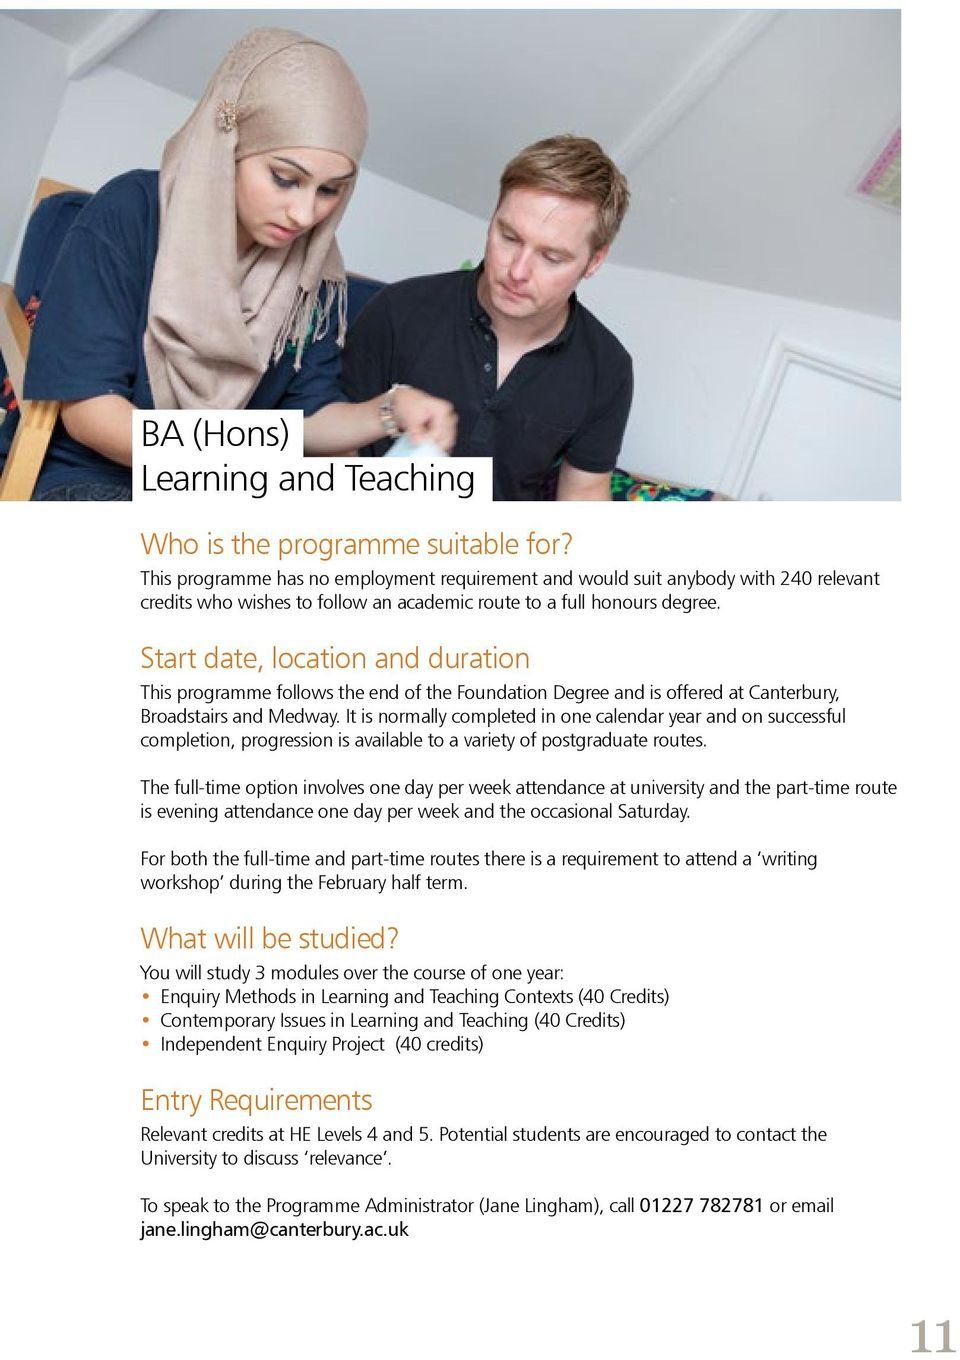 Start date, location and duration This programme follows the end of the Foundation Degree and is offered at Canterbury, Broadstairs and Medway.